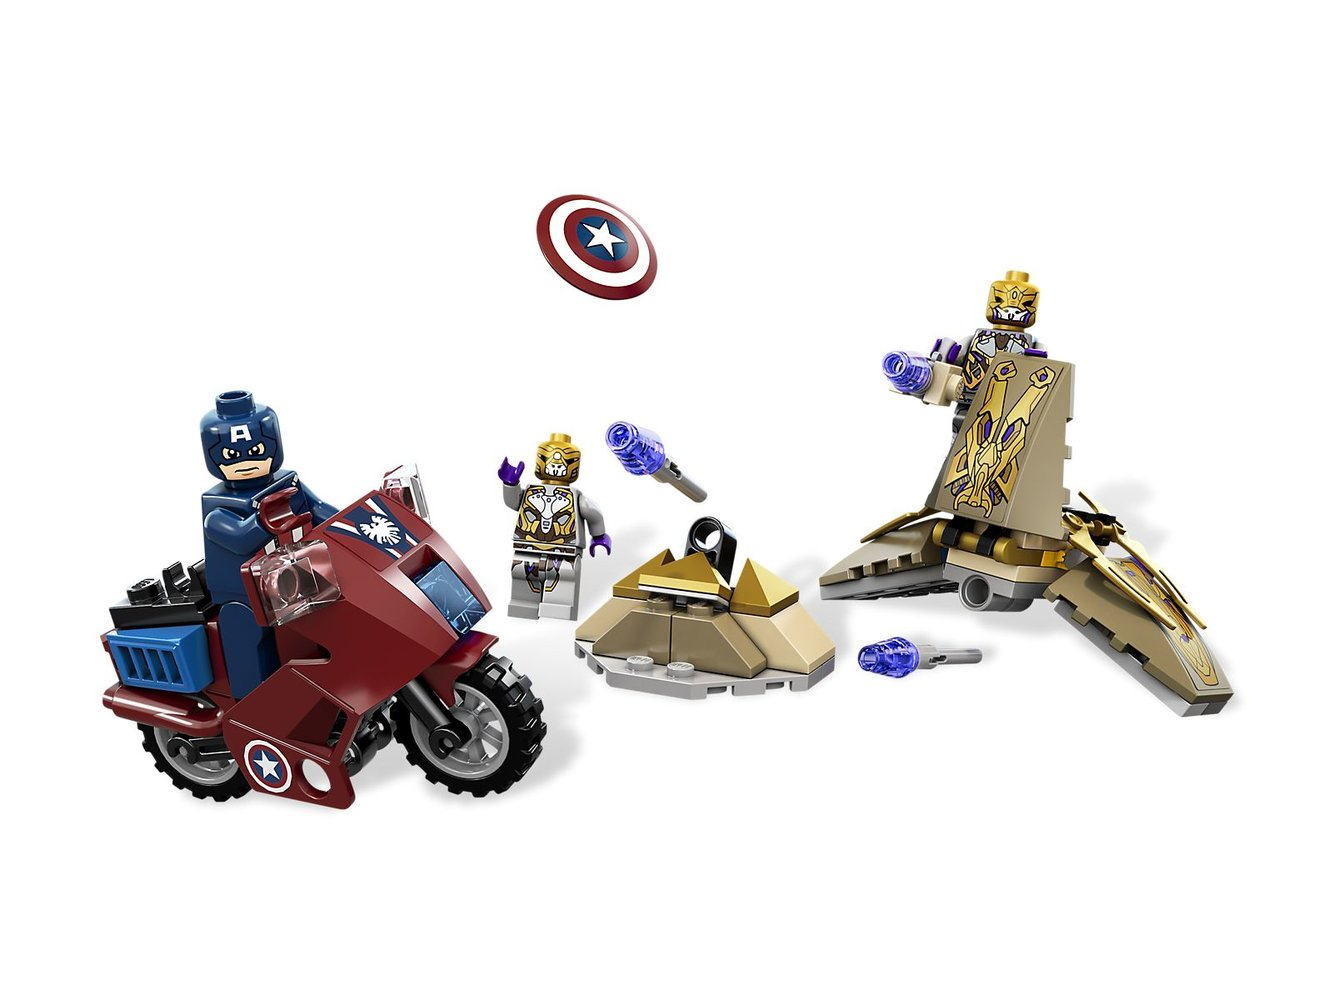 Captain America's Avenging Cycle